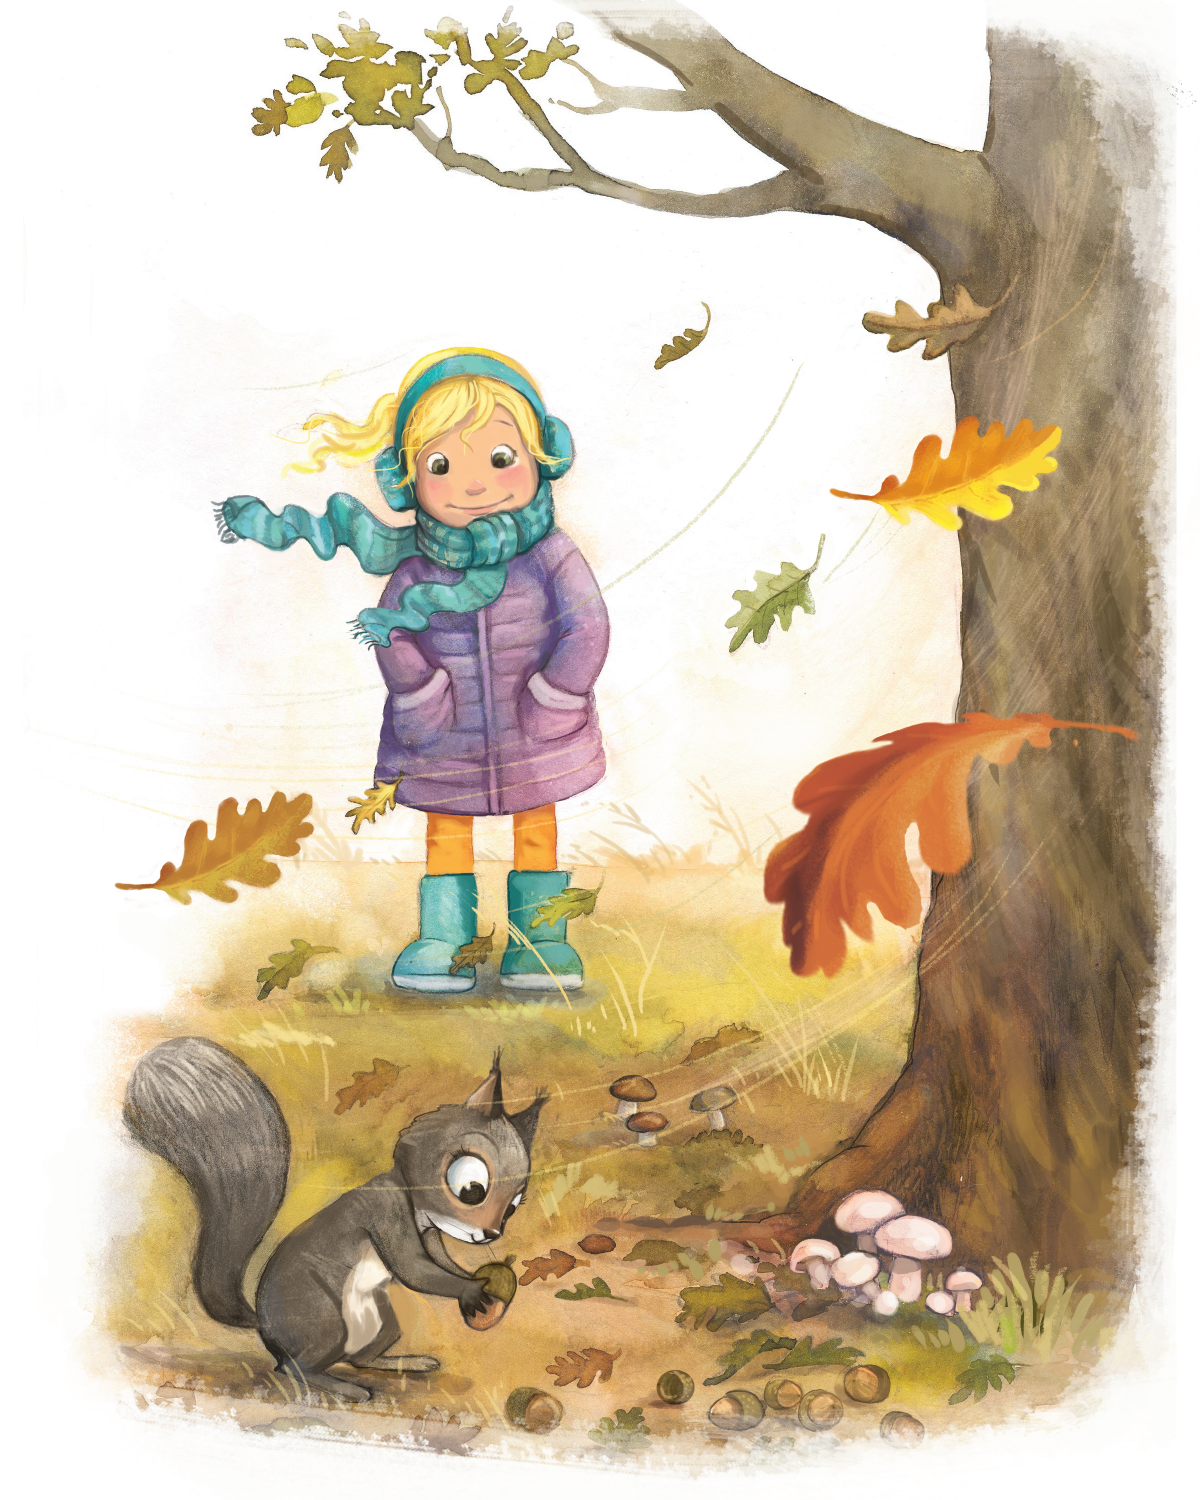 Illustrations for book about fairies